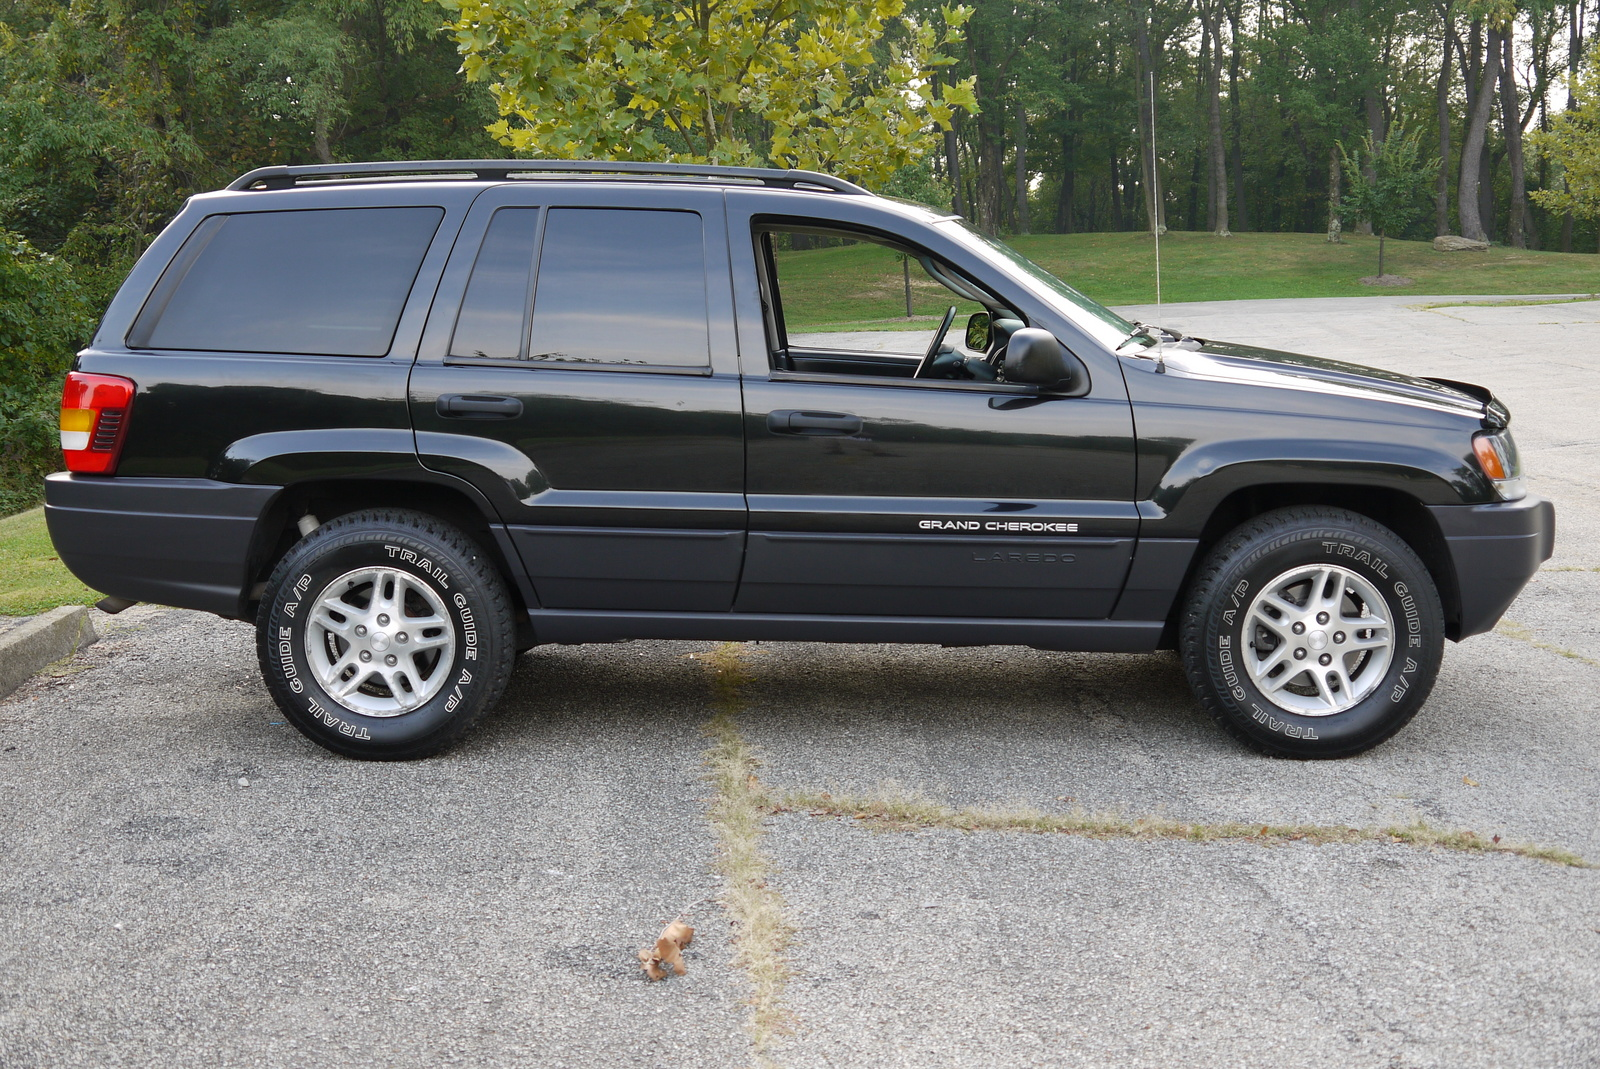 2004 jeep grand cherokee laredo 4wd picture exterior. Cars Review. Best American Auto & Cars Review